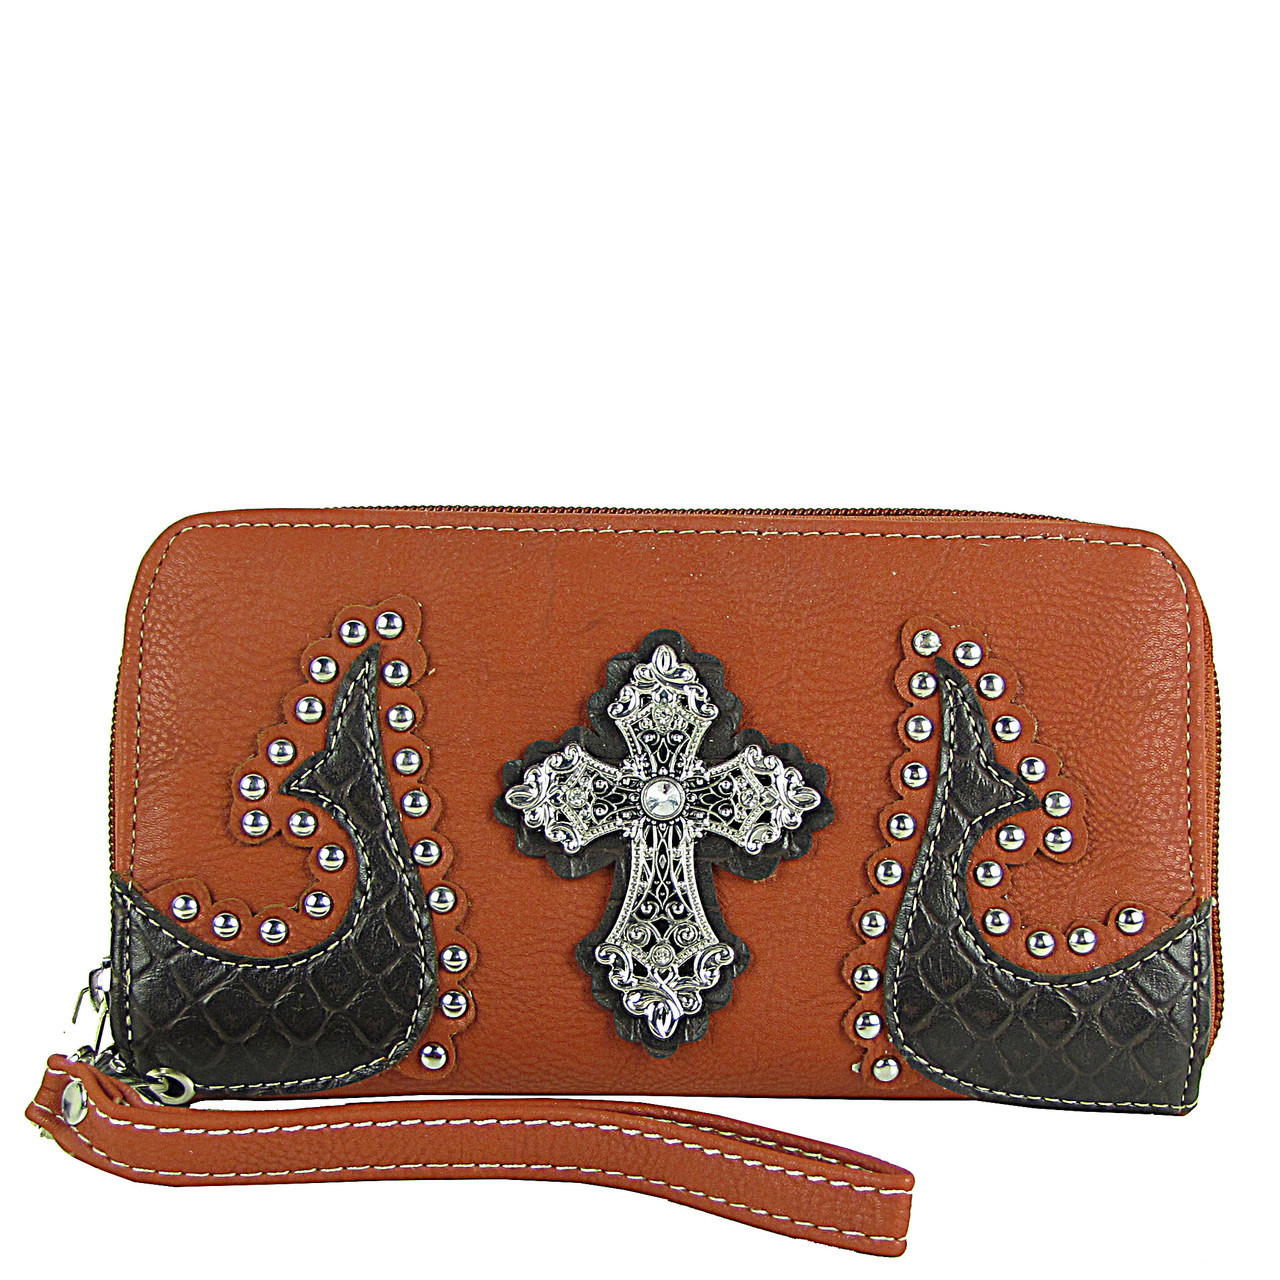 RED WESTERN STUDDED TOOLED CROSS LOOK ZIPPER WALLET CB3-0401RED